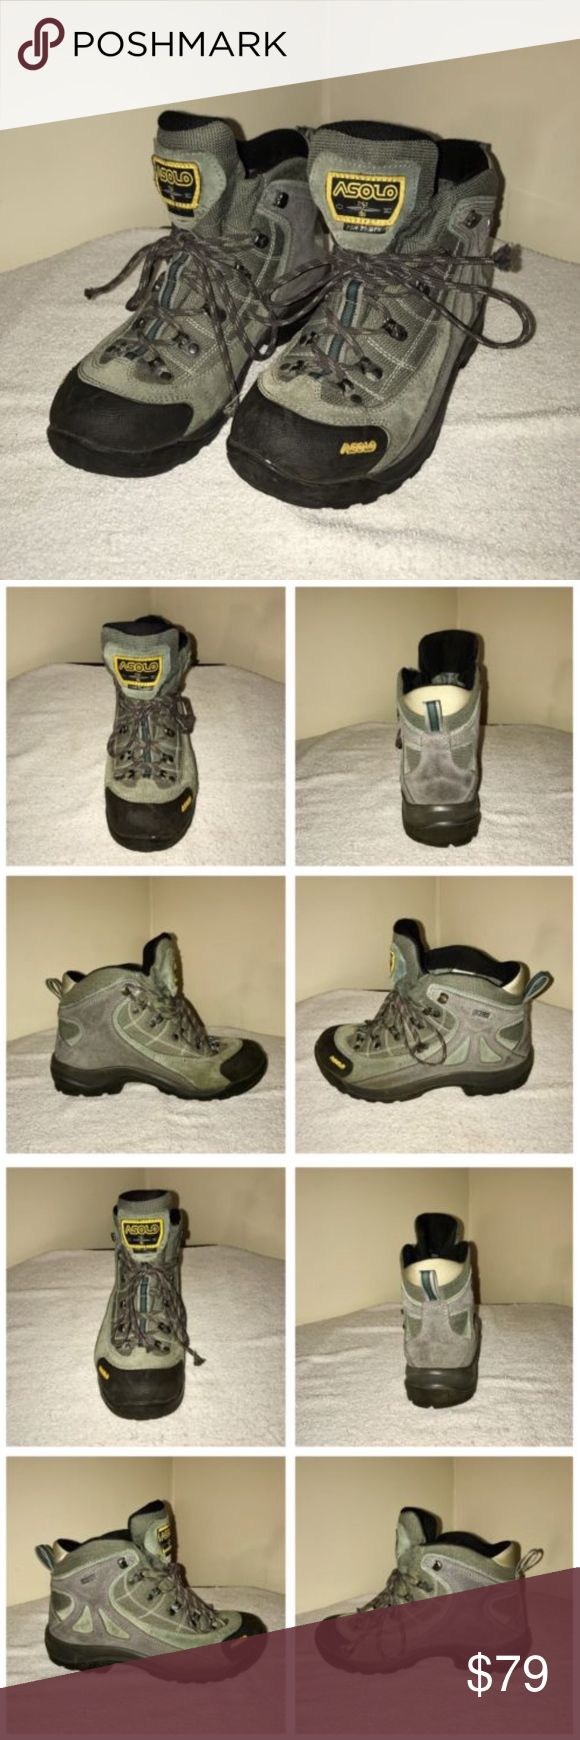 Women's ASOLO FSN 70 GTX Hiking Boots Description    Size: 7.5 (US)  Color: Green, Gray and Black  Tag Measurements- 7.5 US  Condition: Excellent  Features: Some light wear, but in overall excellent condition. Minimal tread wear. Asolo Shoes Winter & Rain Boots